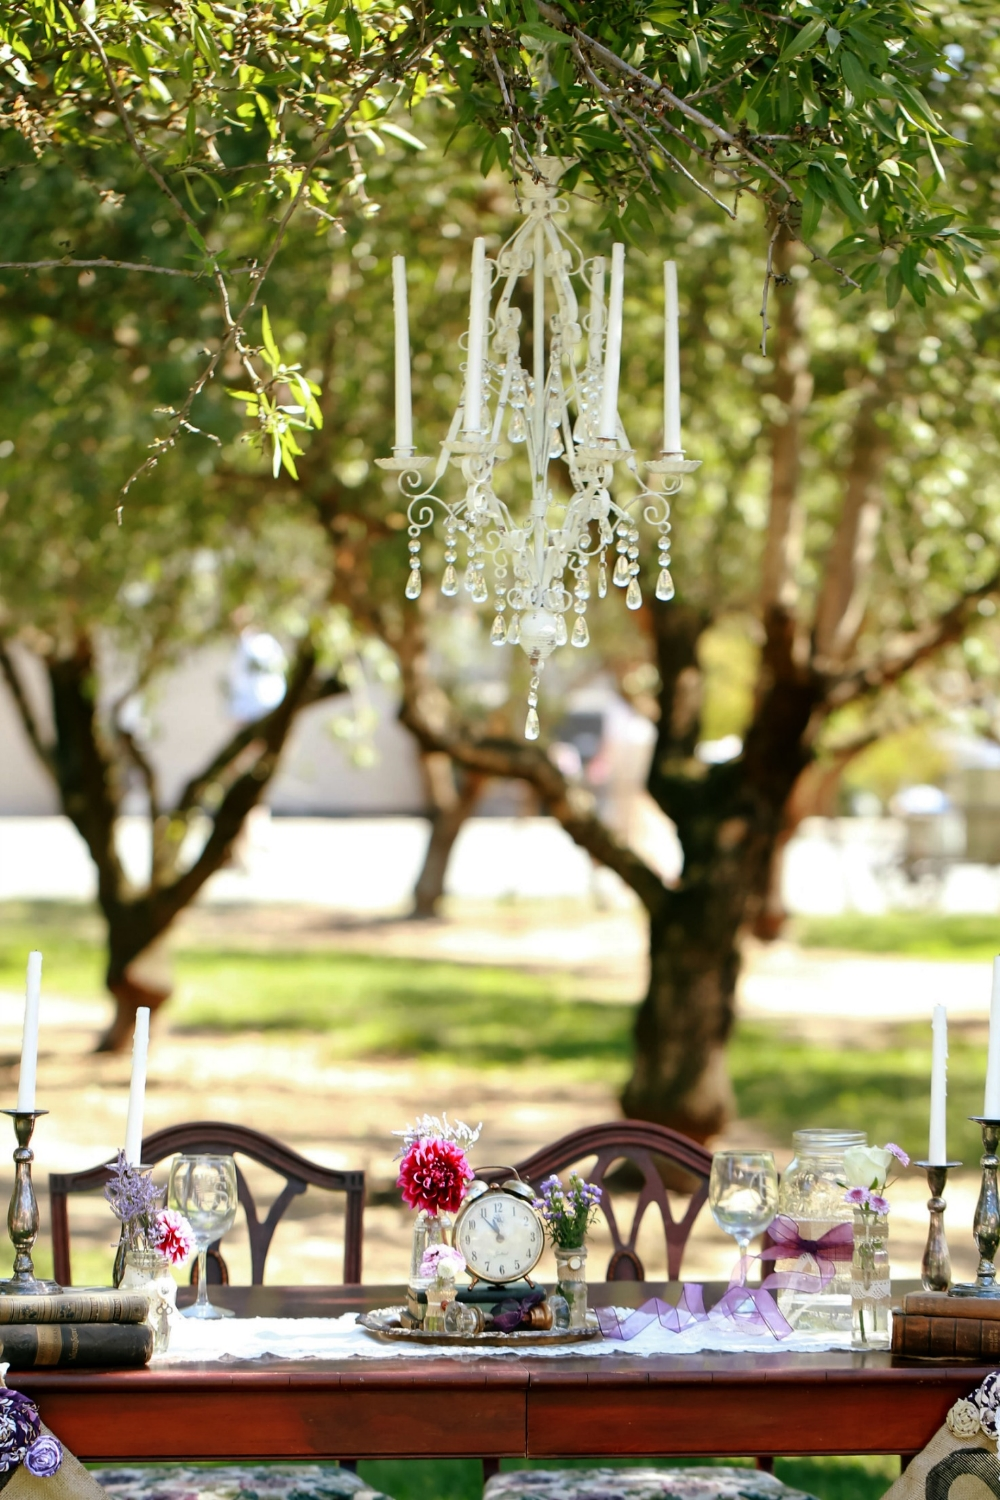 Rustic vintage Wedding Romantic Sweetheart Table